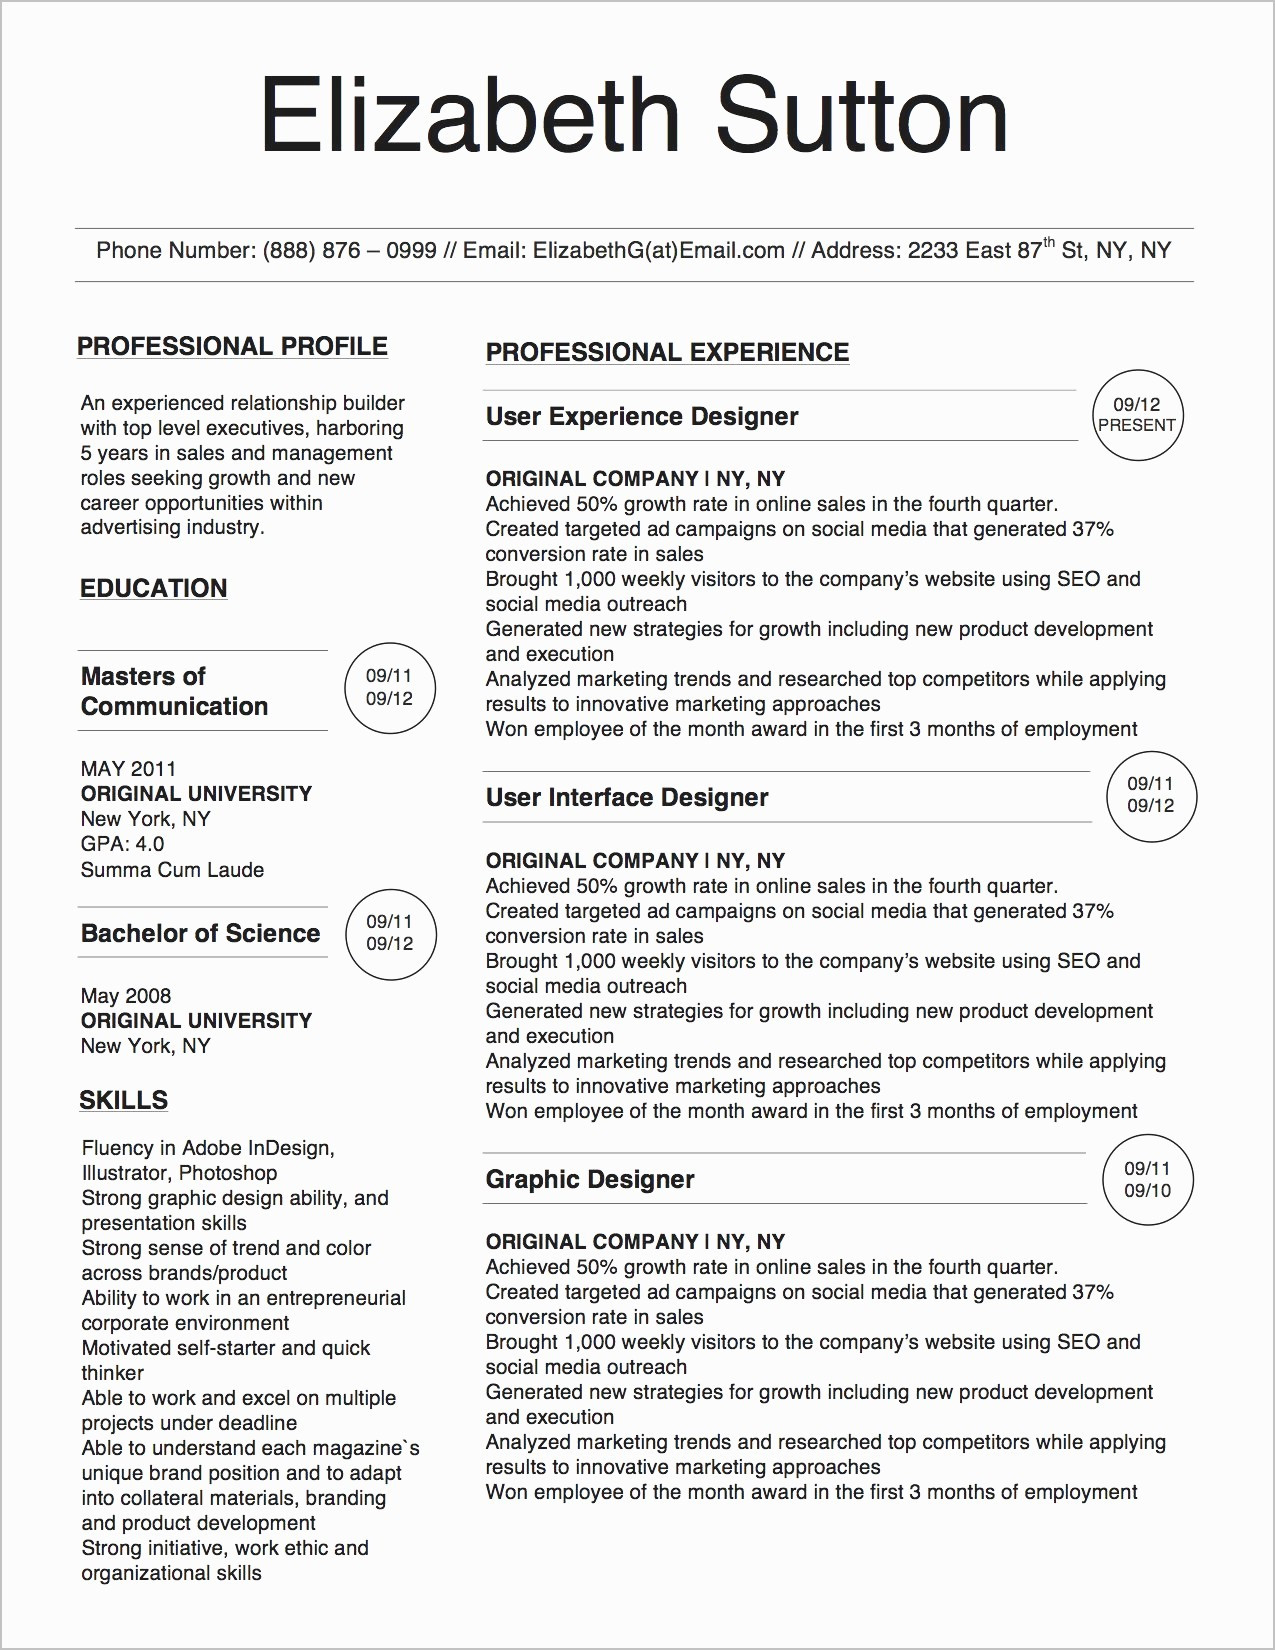 resume maker free online Collection-Best Quick Resume Maker Free Ideas Easy Resume Maker New Resume Maker Free Usajobs 12-j